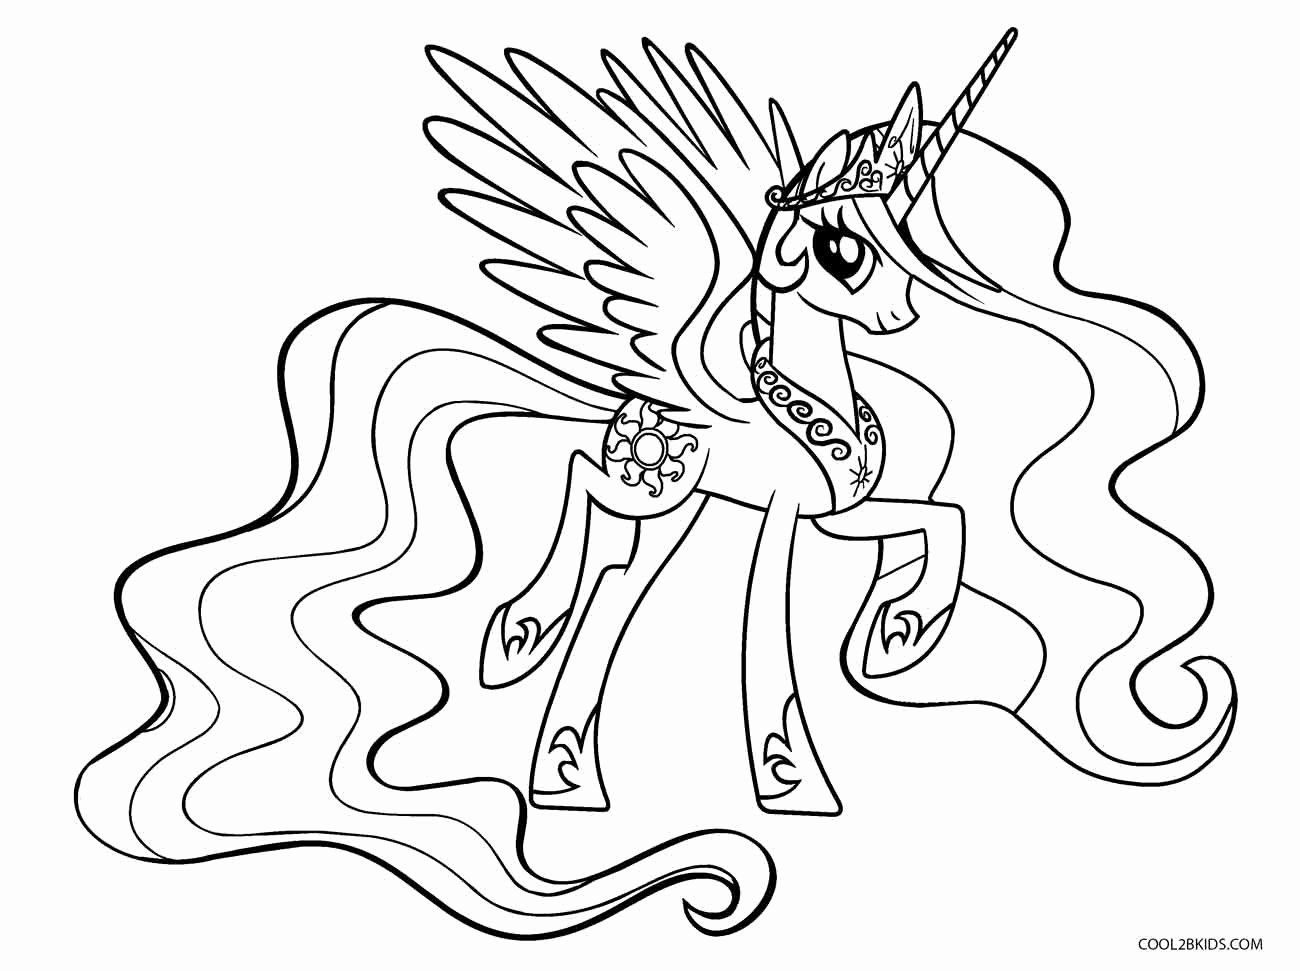 My Little Pony Coloring Book Elegant My Little Pony Human Coloring Pages To Print Hellboyfull O In 2020 My Little Pony Coloring My Little Pony Printable Pony Drawing